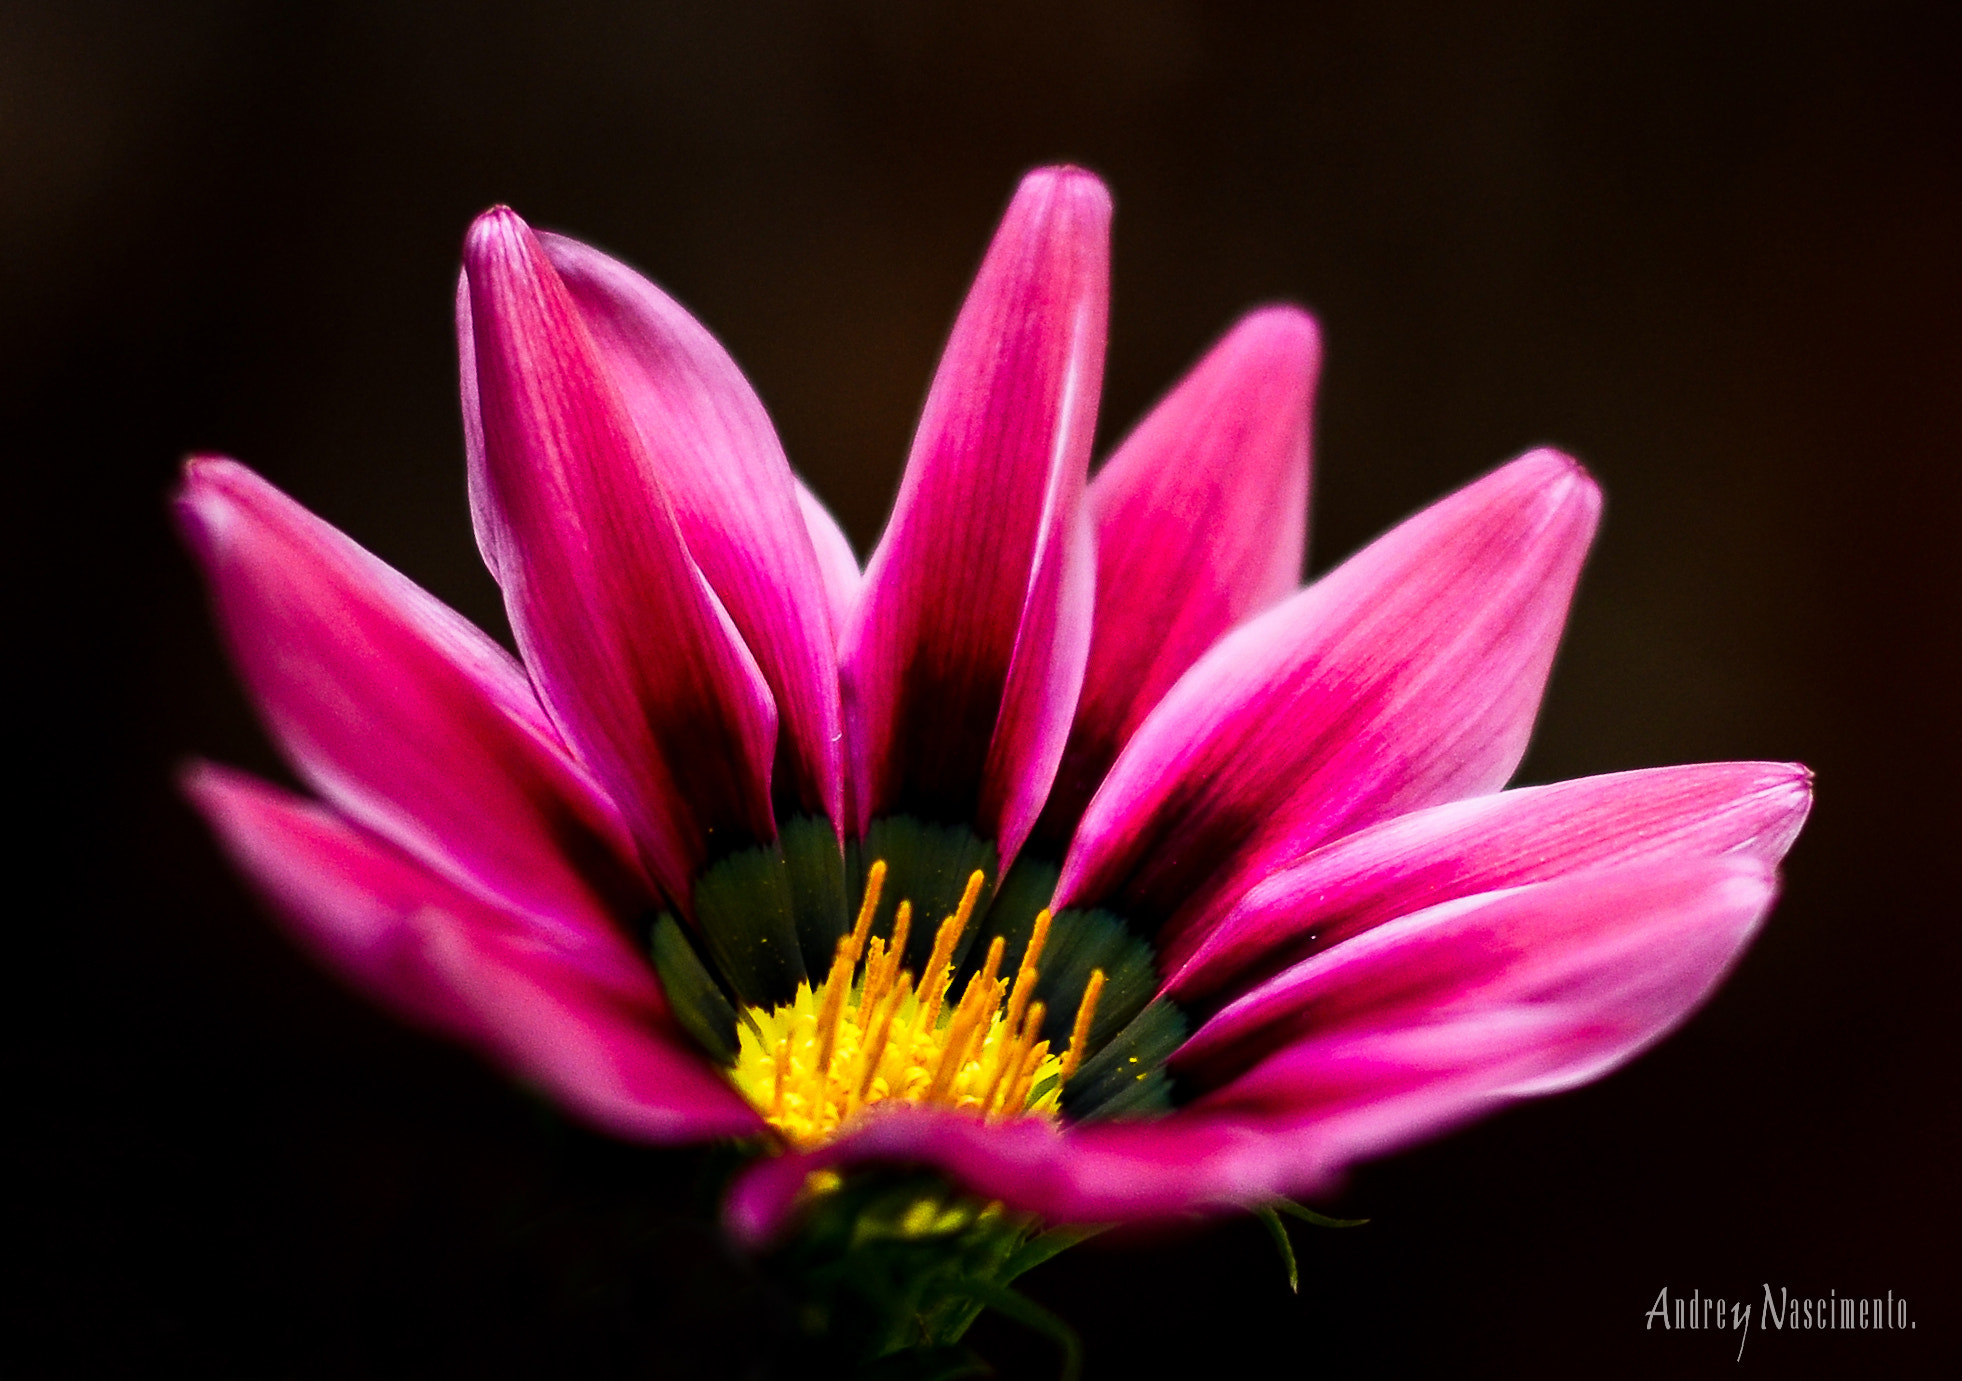 Photograph The light flower by Andrey Nascimento on 500px